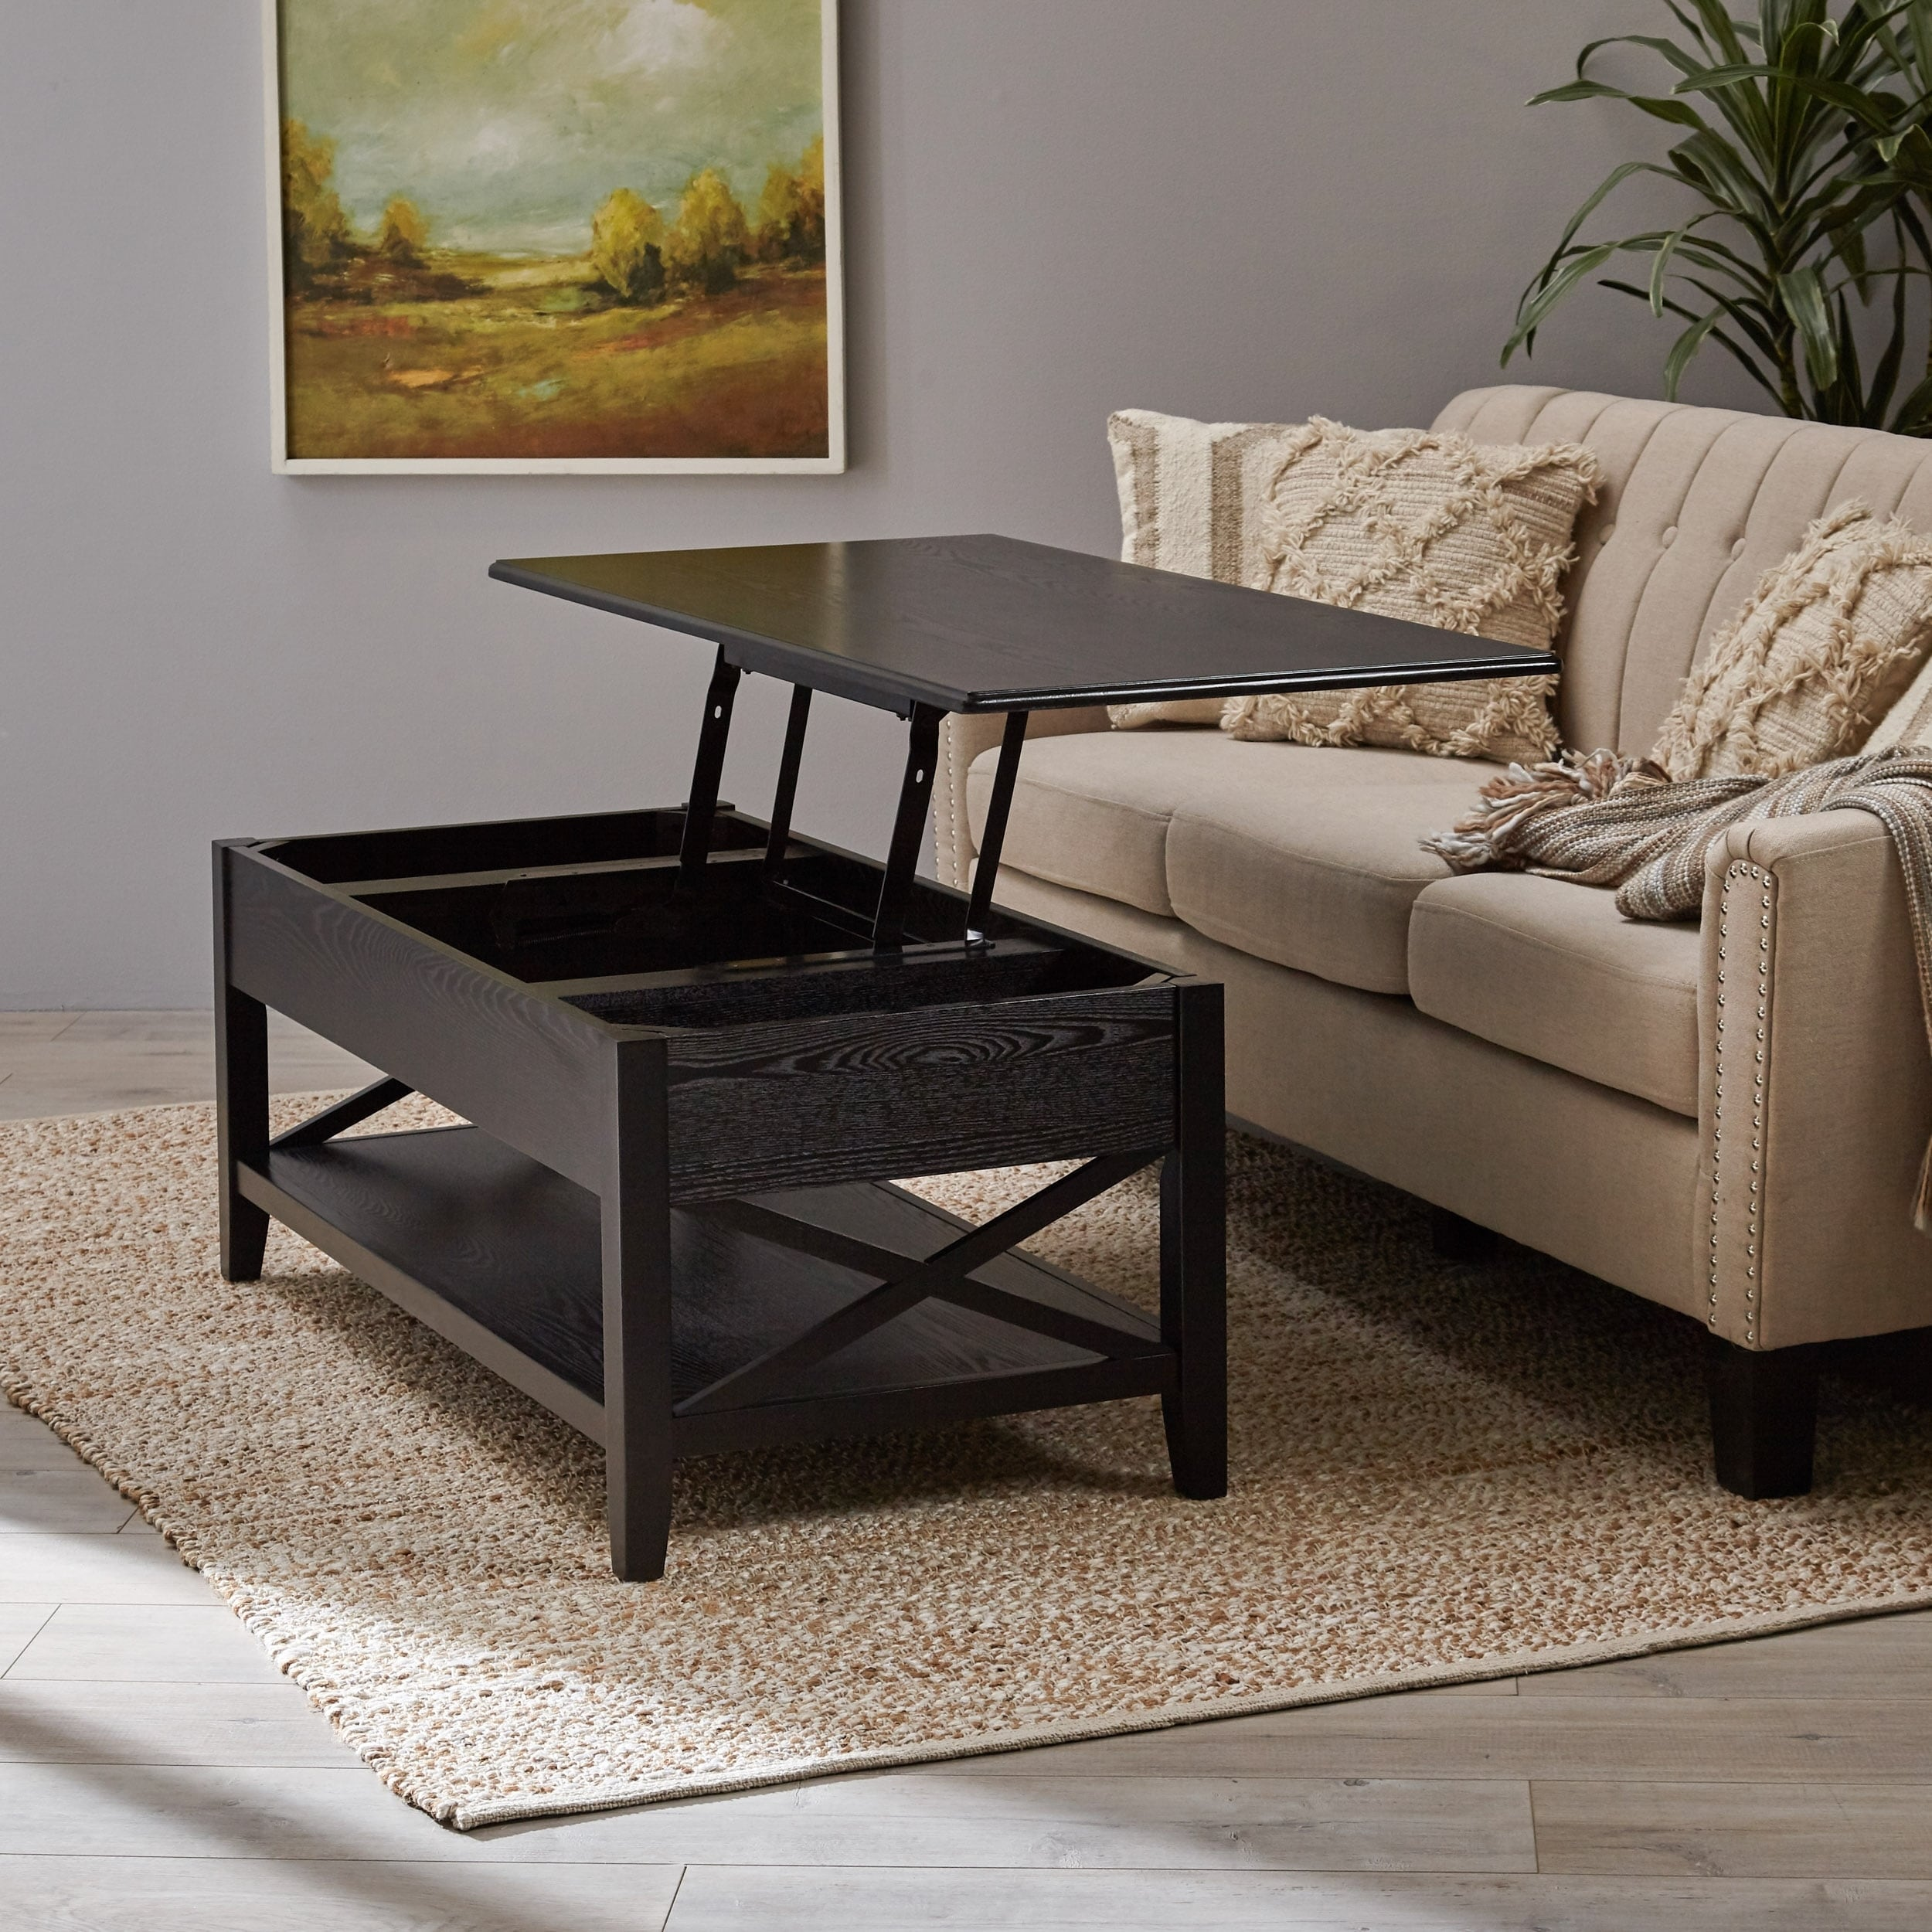 Farmhouse Lift Top Coffee Table.Decatur Farmhouse Faux Wood Lift Top Coffee Table By Christopher Knight Home